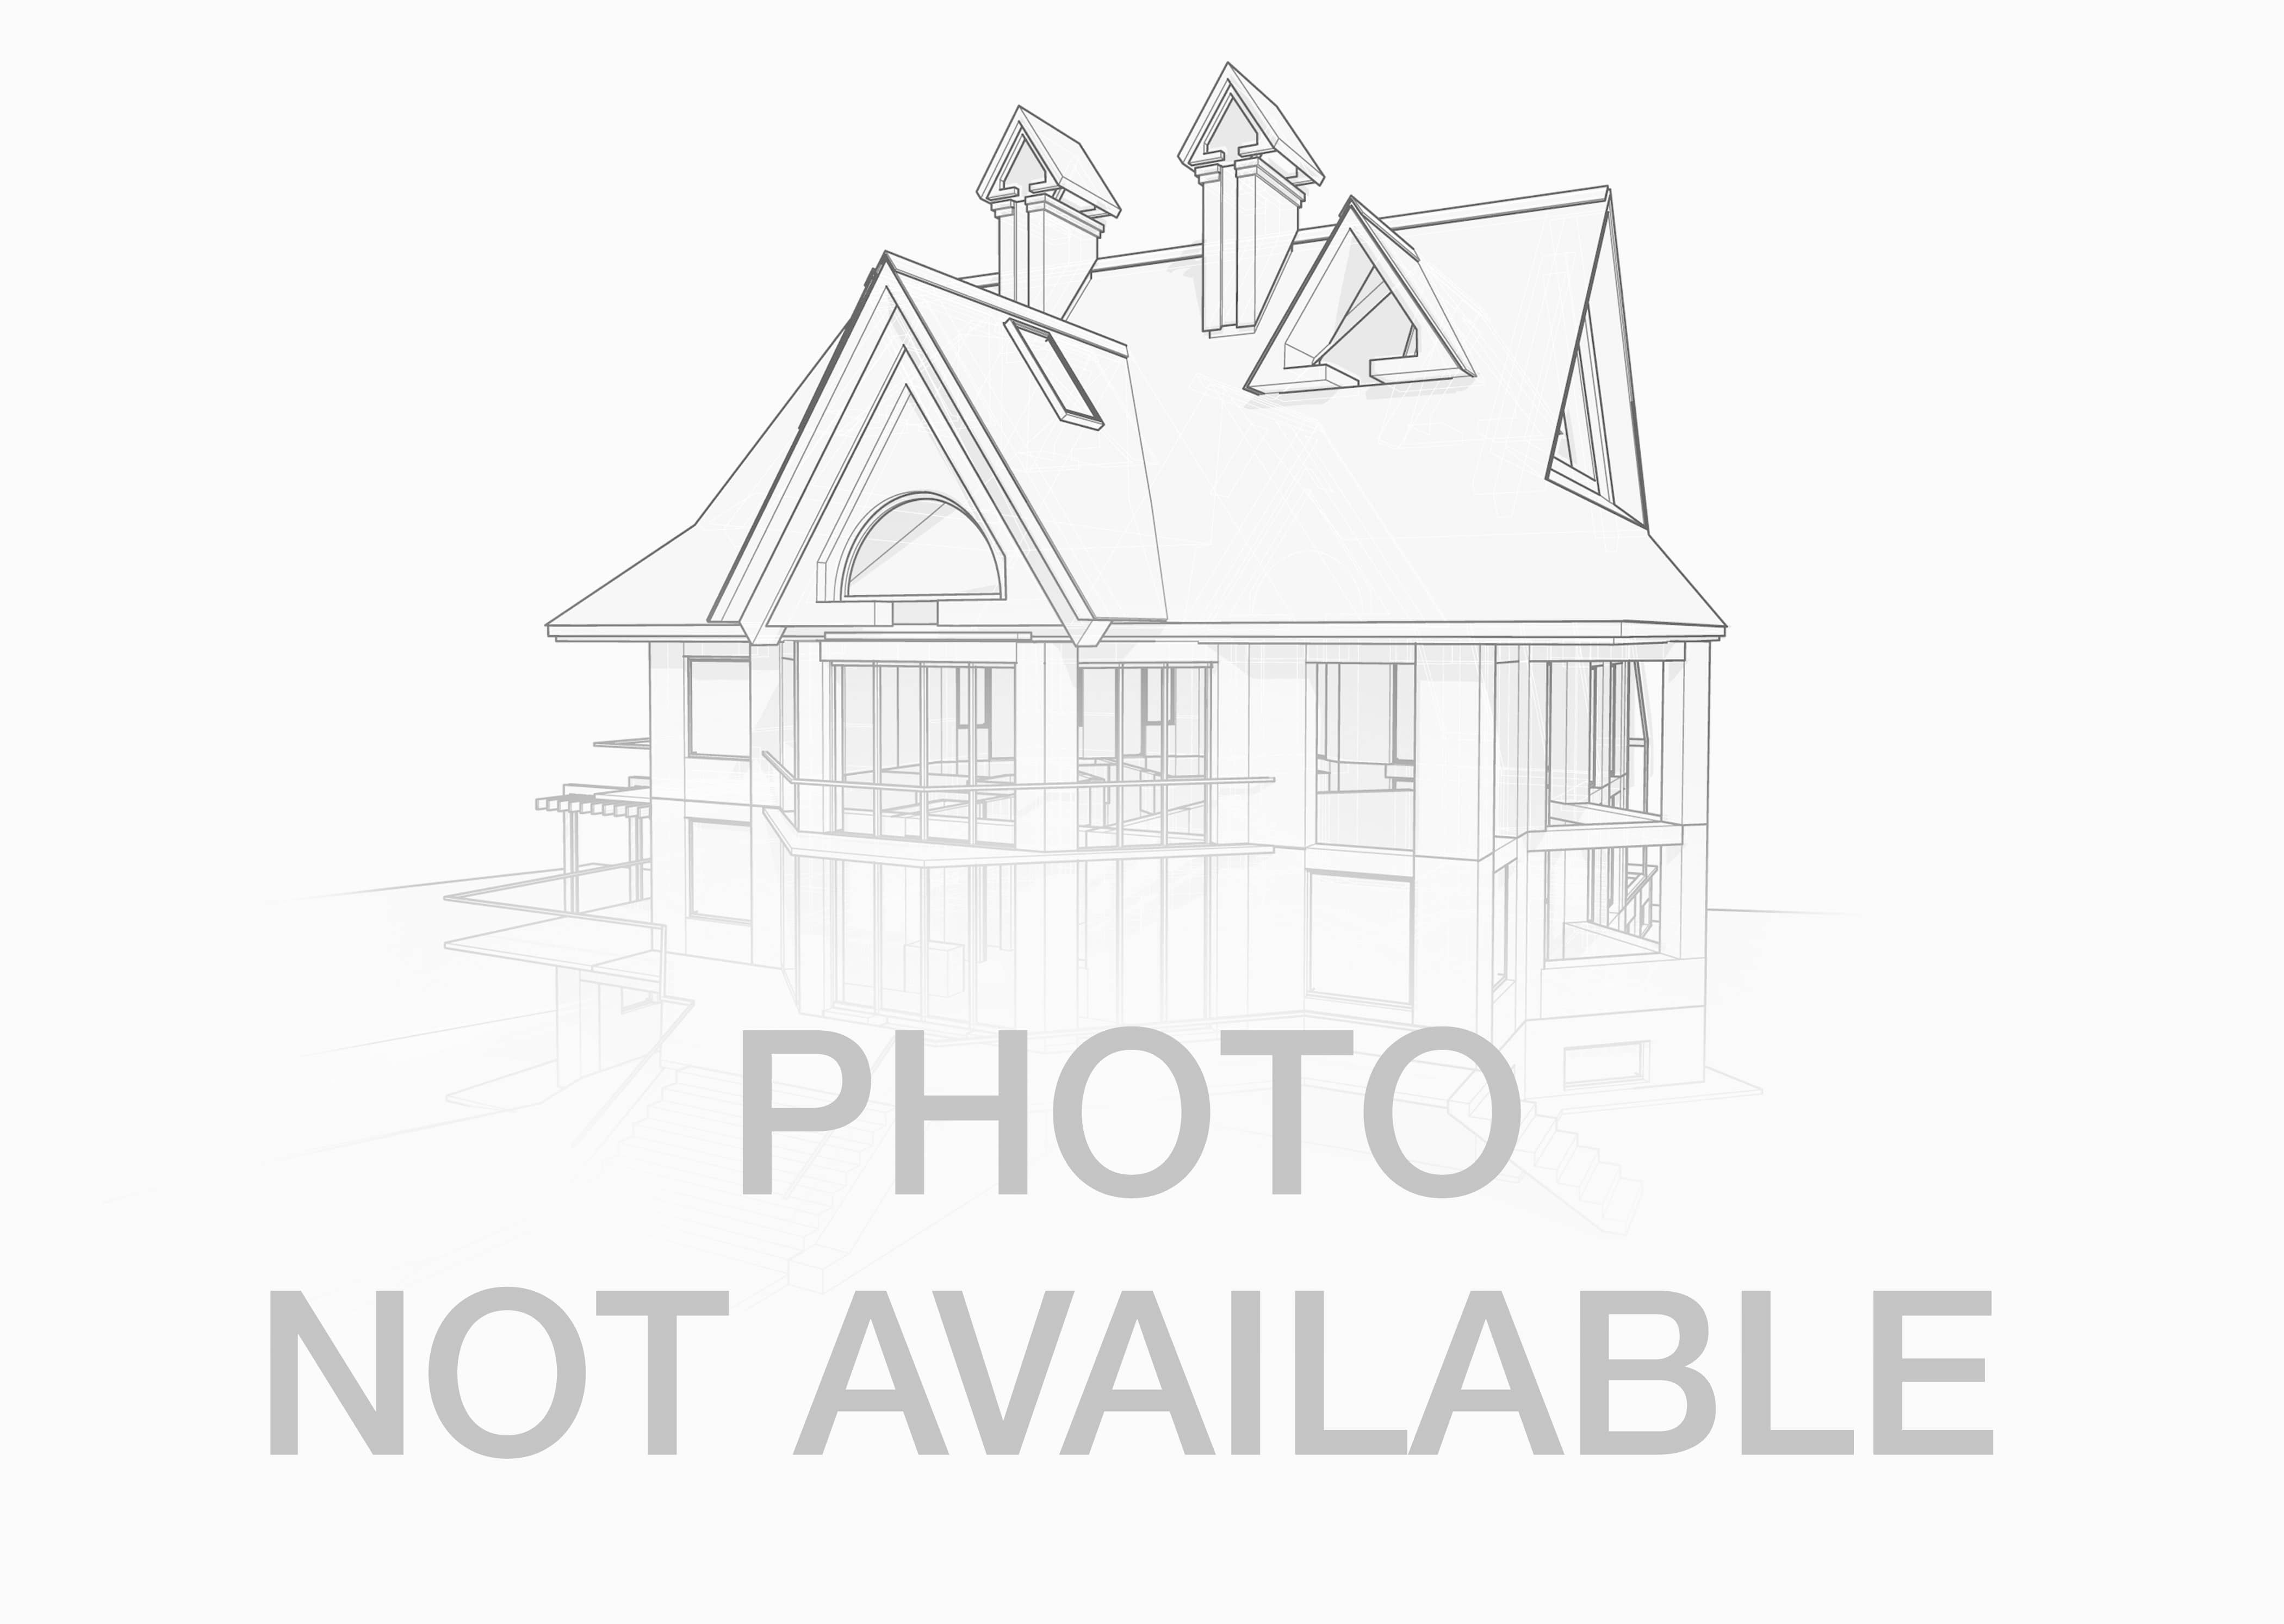 Listings Search Capuccio Dream Homes Realty